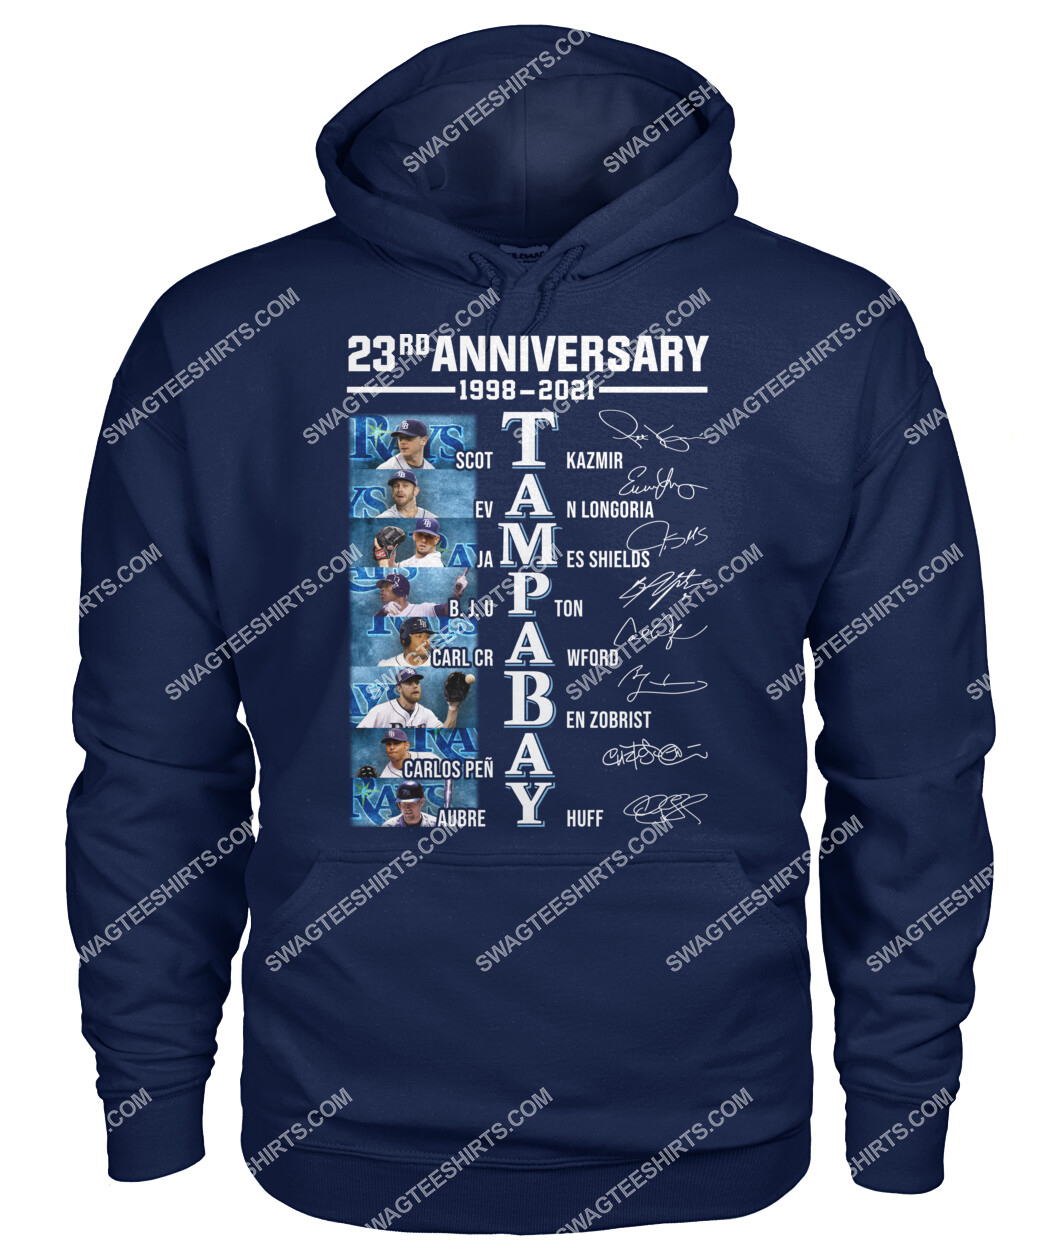 the tampa bay rays 23rd anniversary 1998 2021 signatures mlb hoodie 1